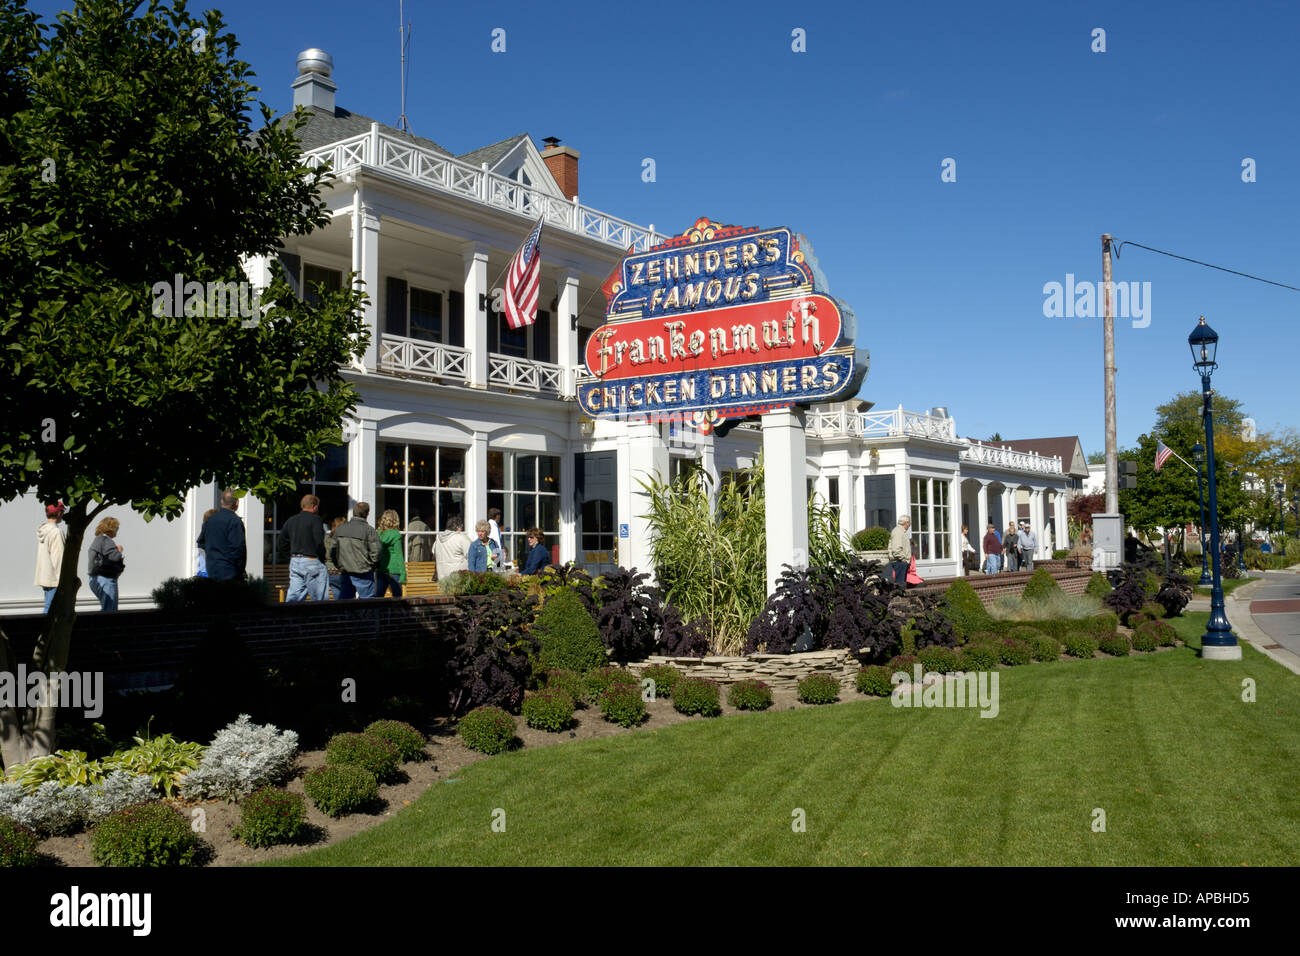 Zehnder S Restaurant In Frankenmuth Michigan Usa Stock Photo